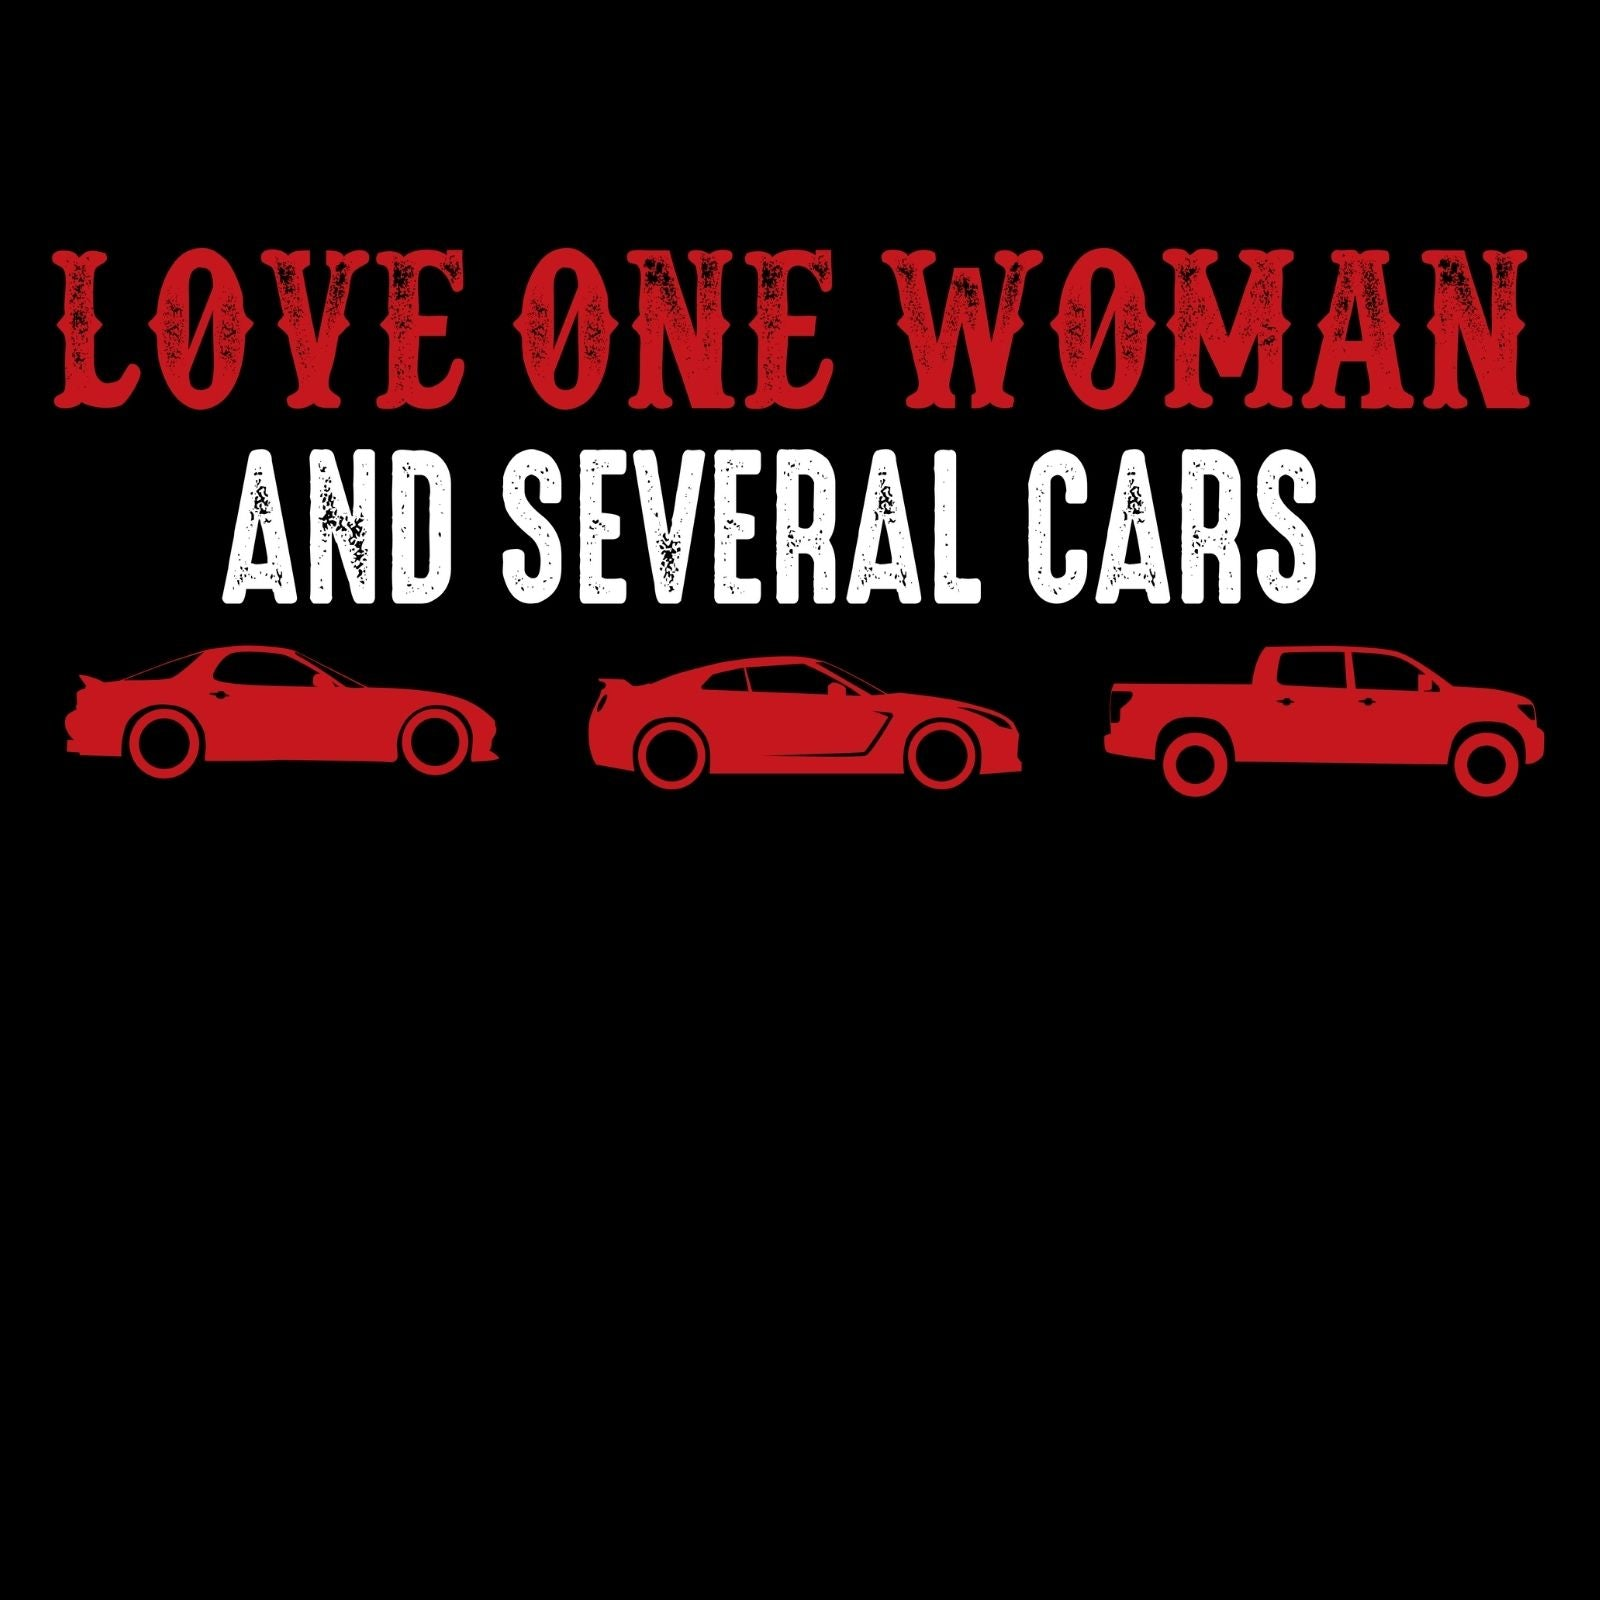 Love One Woman And Several Cars - Bastard Graphics